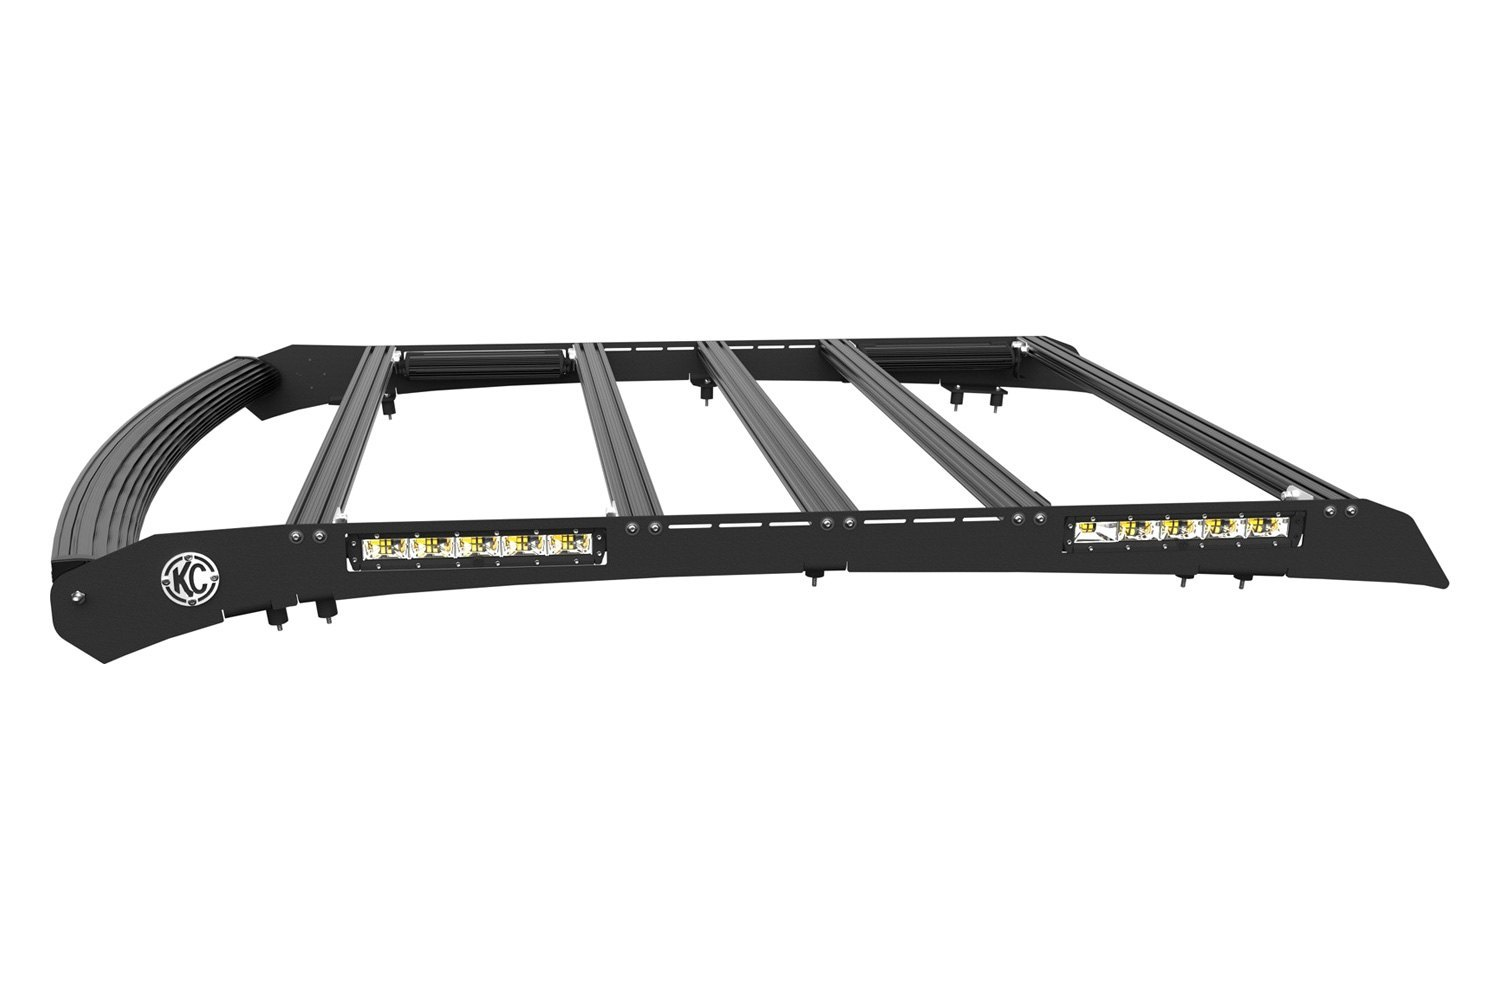 For Chevy Colorado Kc Hilites C Series Roof